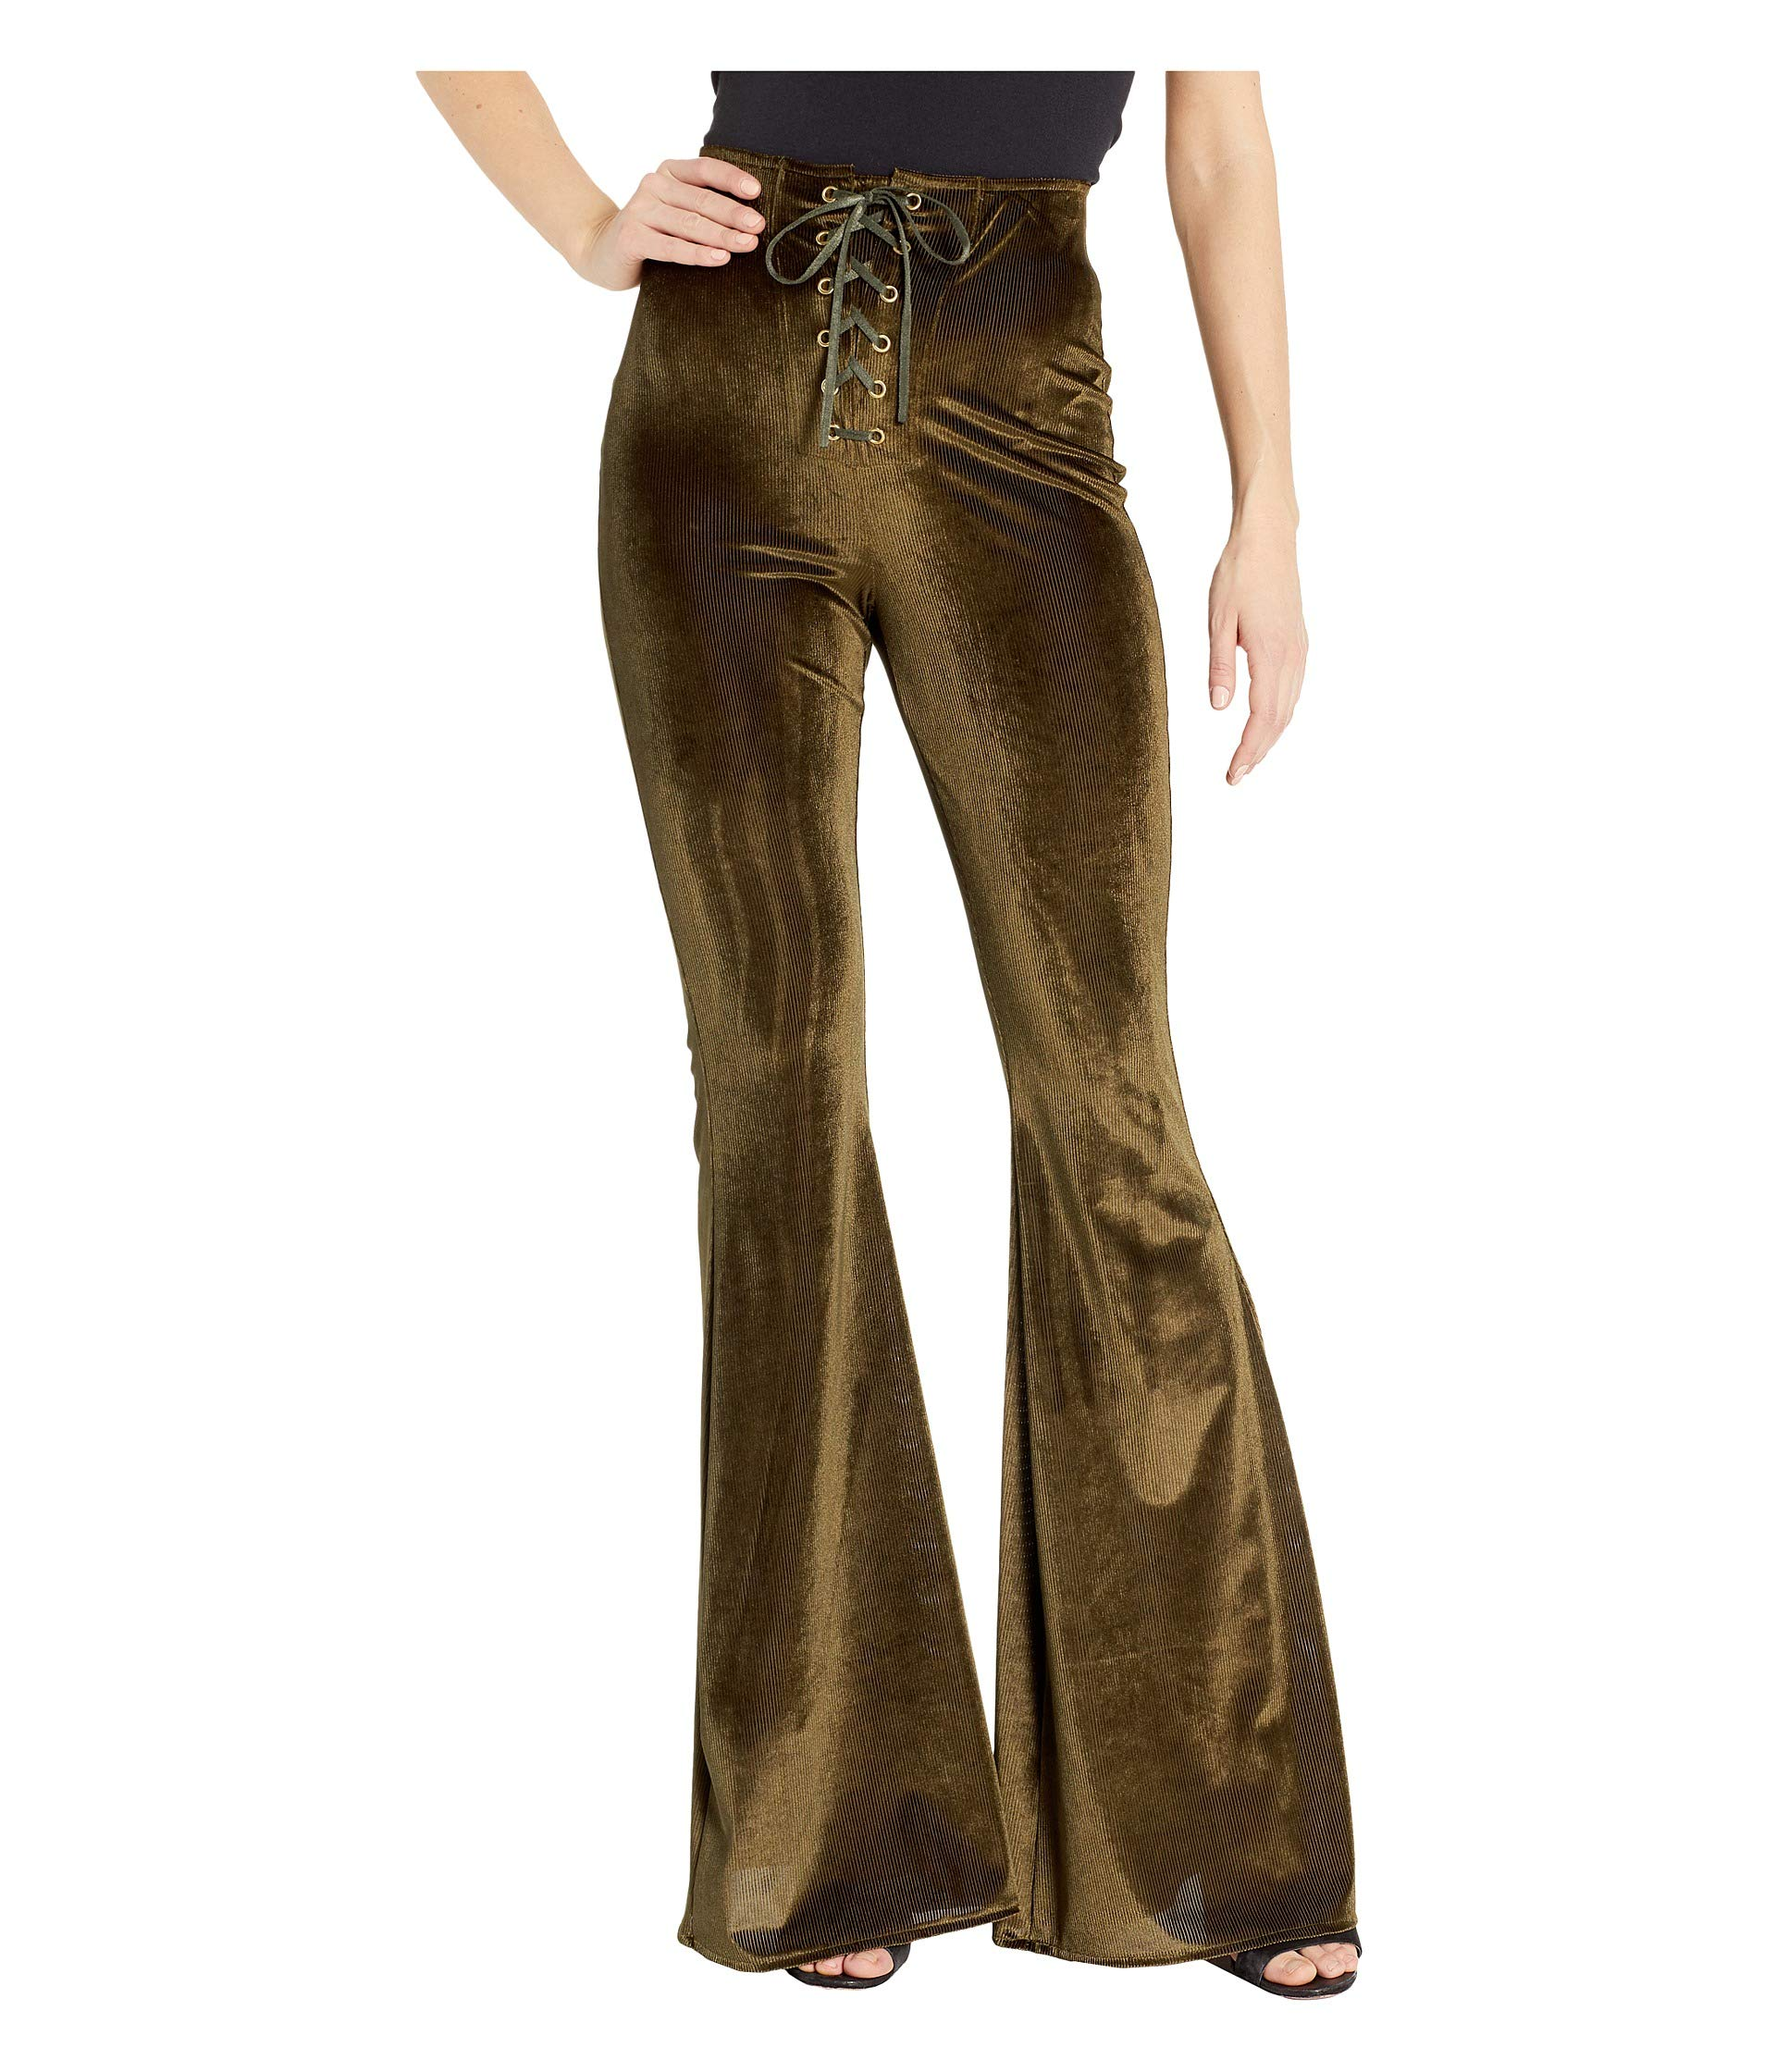 image of bell bottoms